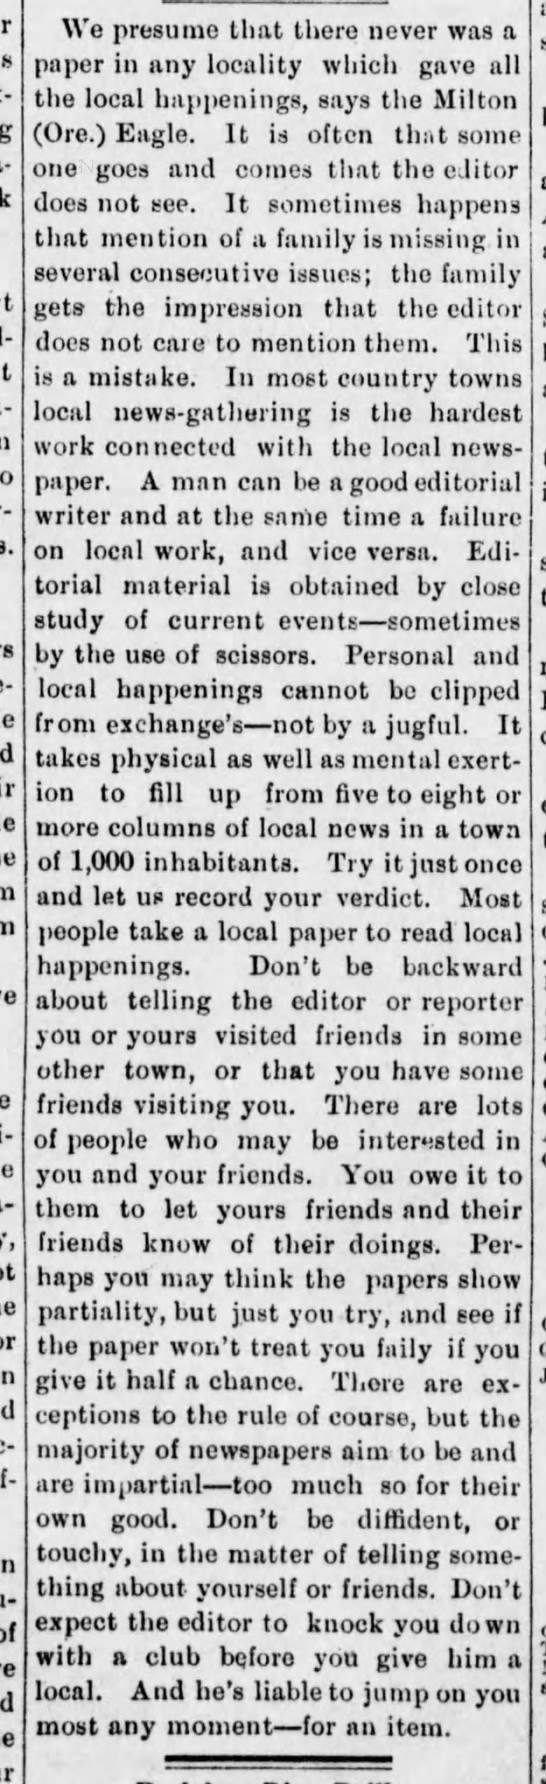 Report your social news to the newspaper, 1899 -